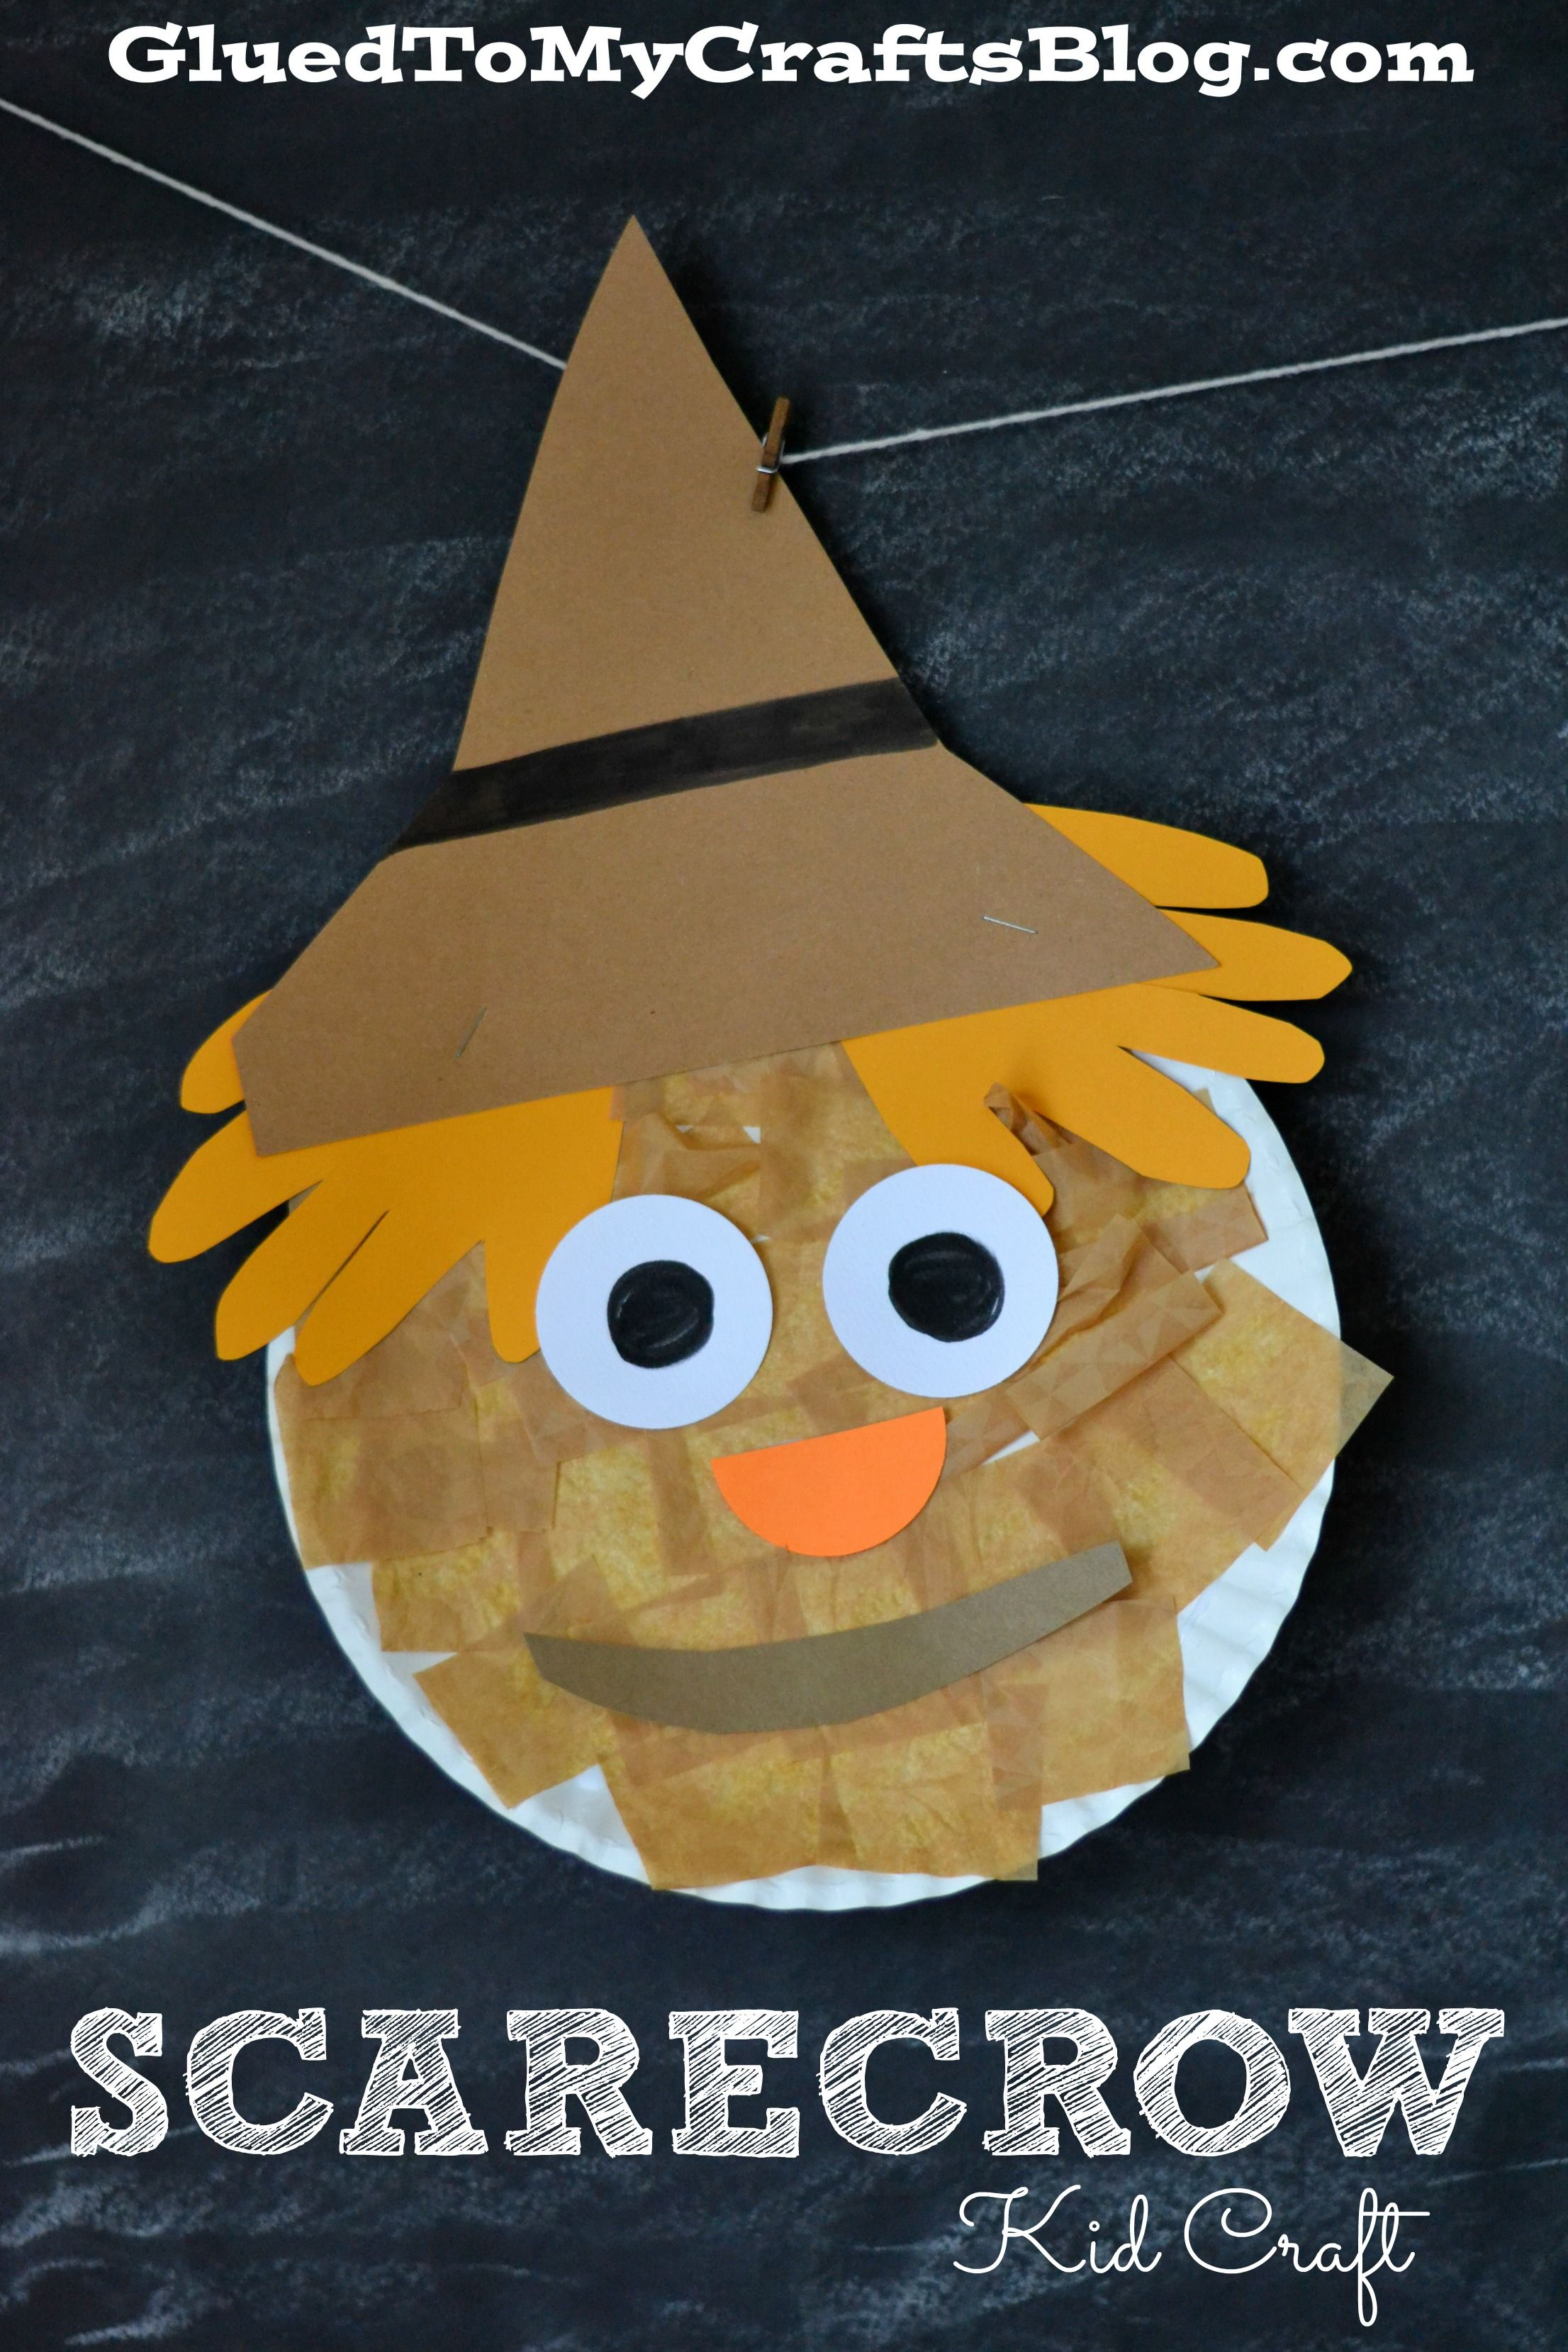 Scarecrow Kid Craft & Scarecrow Kid Craft | Scarecrows Craft and Guy